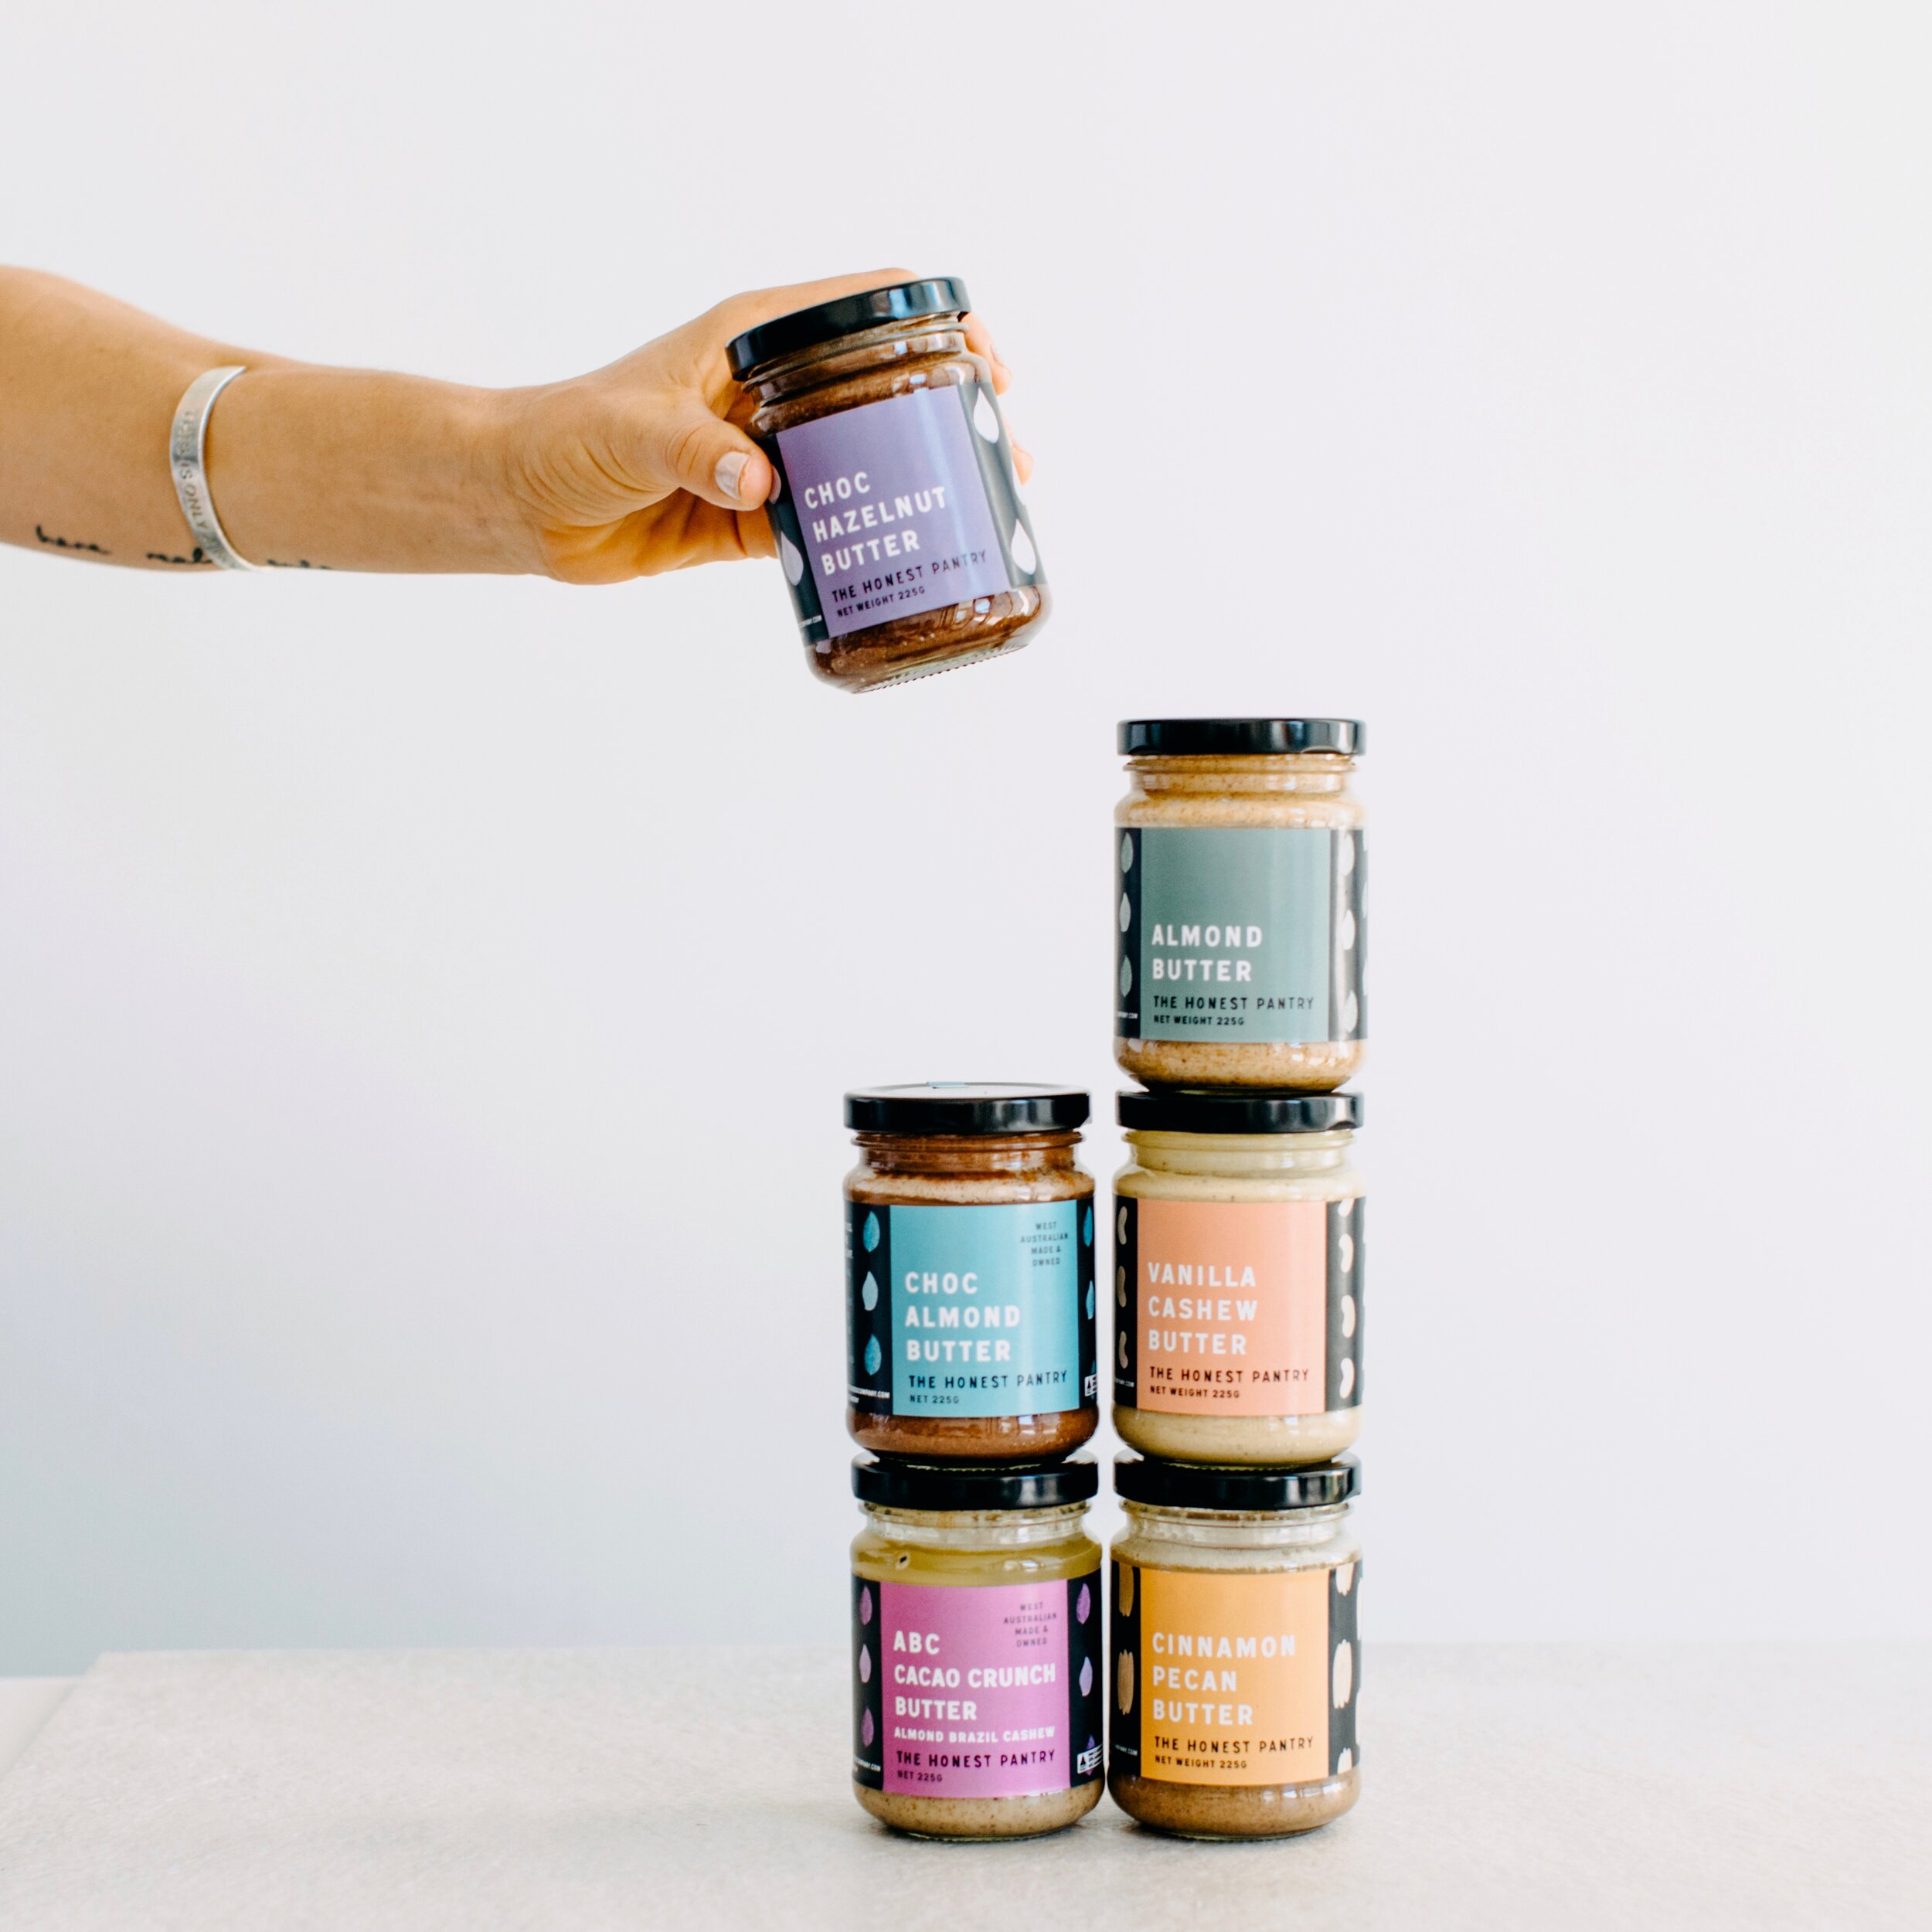 Keeping it honest. - The Honest Pantry artisan nut butter blends are all natural, vegan and sugar free. Small batch, made in Perth, Western Australia.What you won't find in our pantry: chemical emulsifiers; added oils; sugar; or ingredients with numbers instead of names.